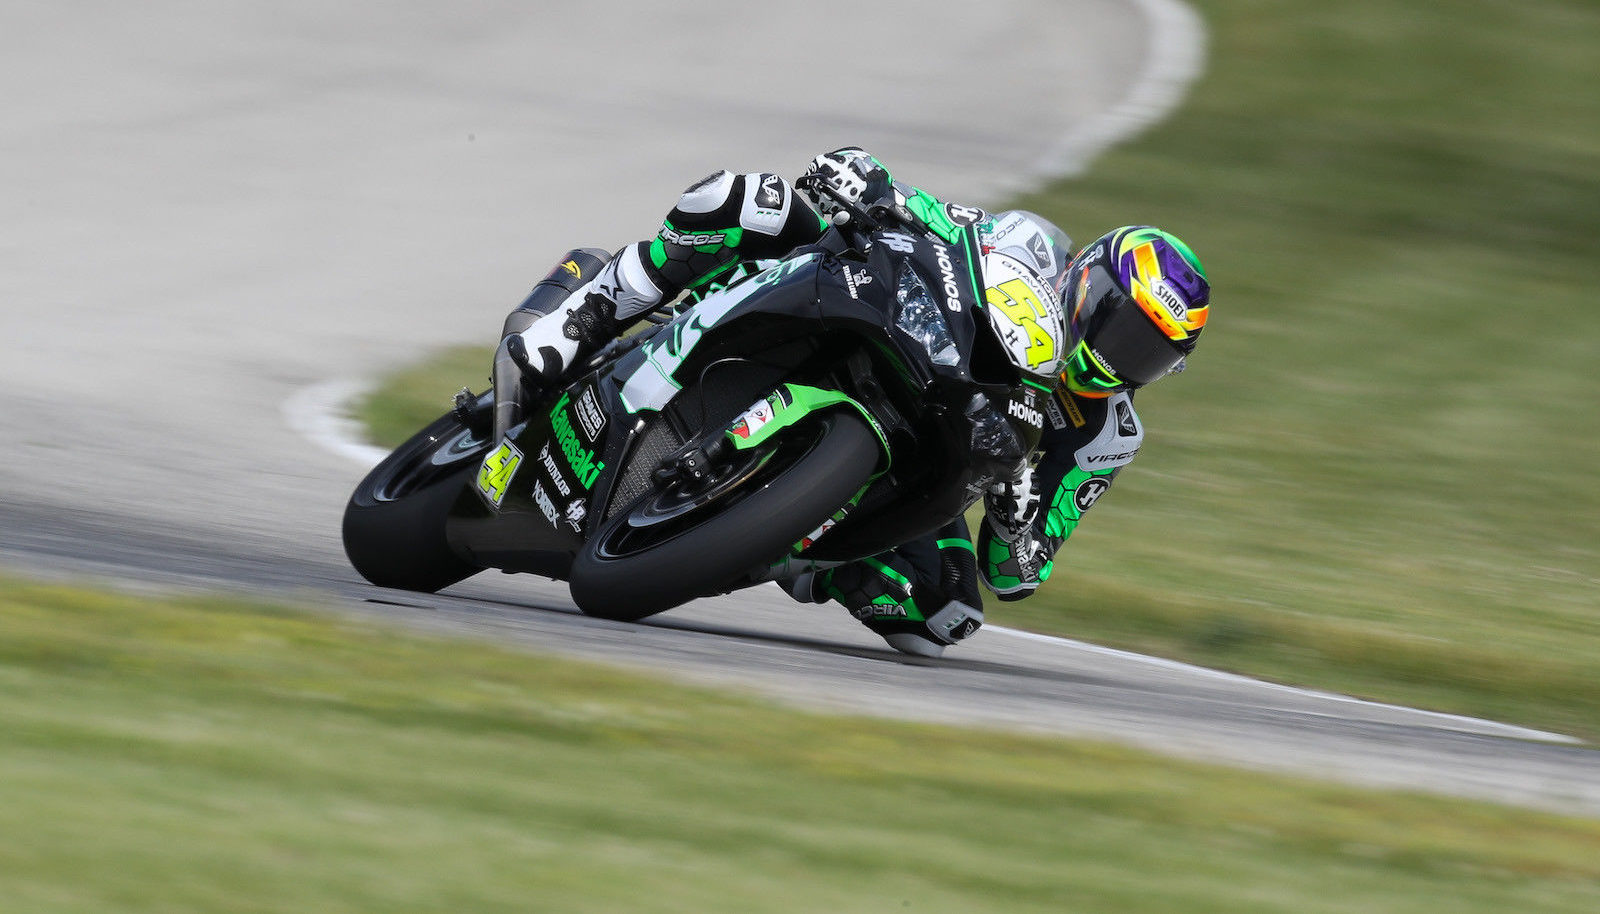 Richie Escalante (54). Photo by Brian J. Nelson, courtesy MotoAmerica.